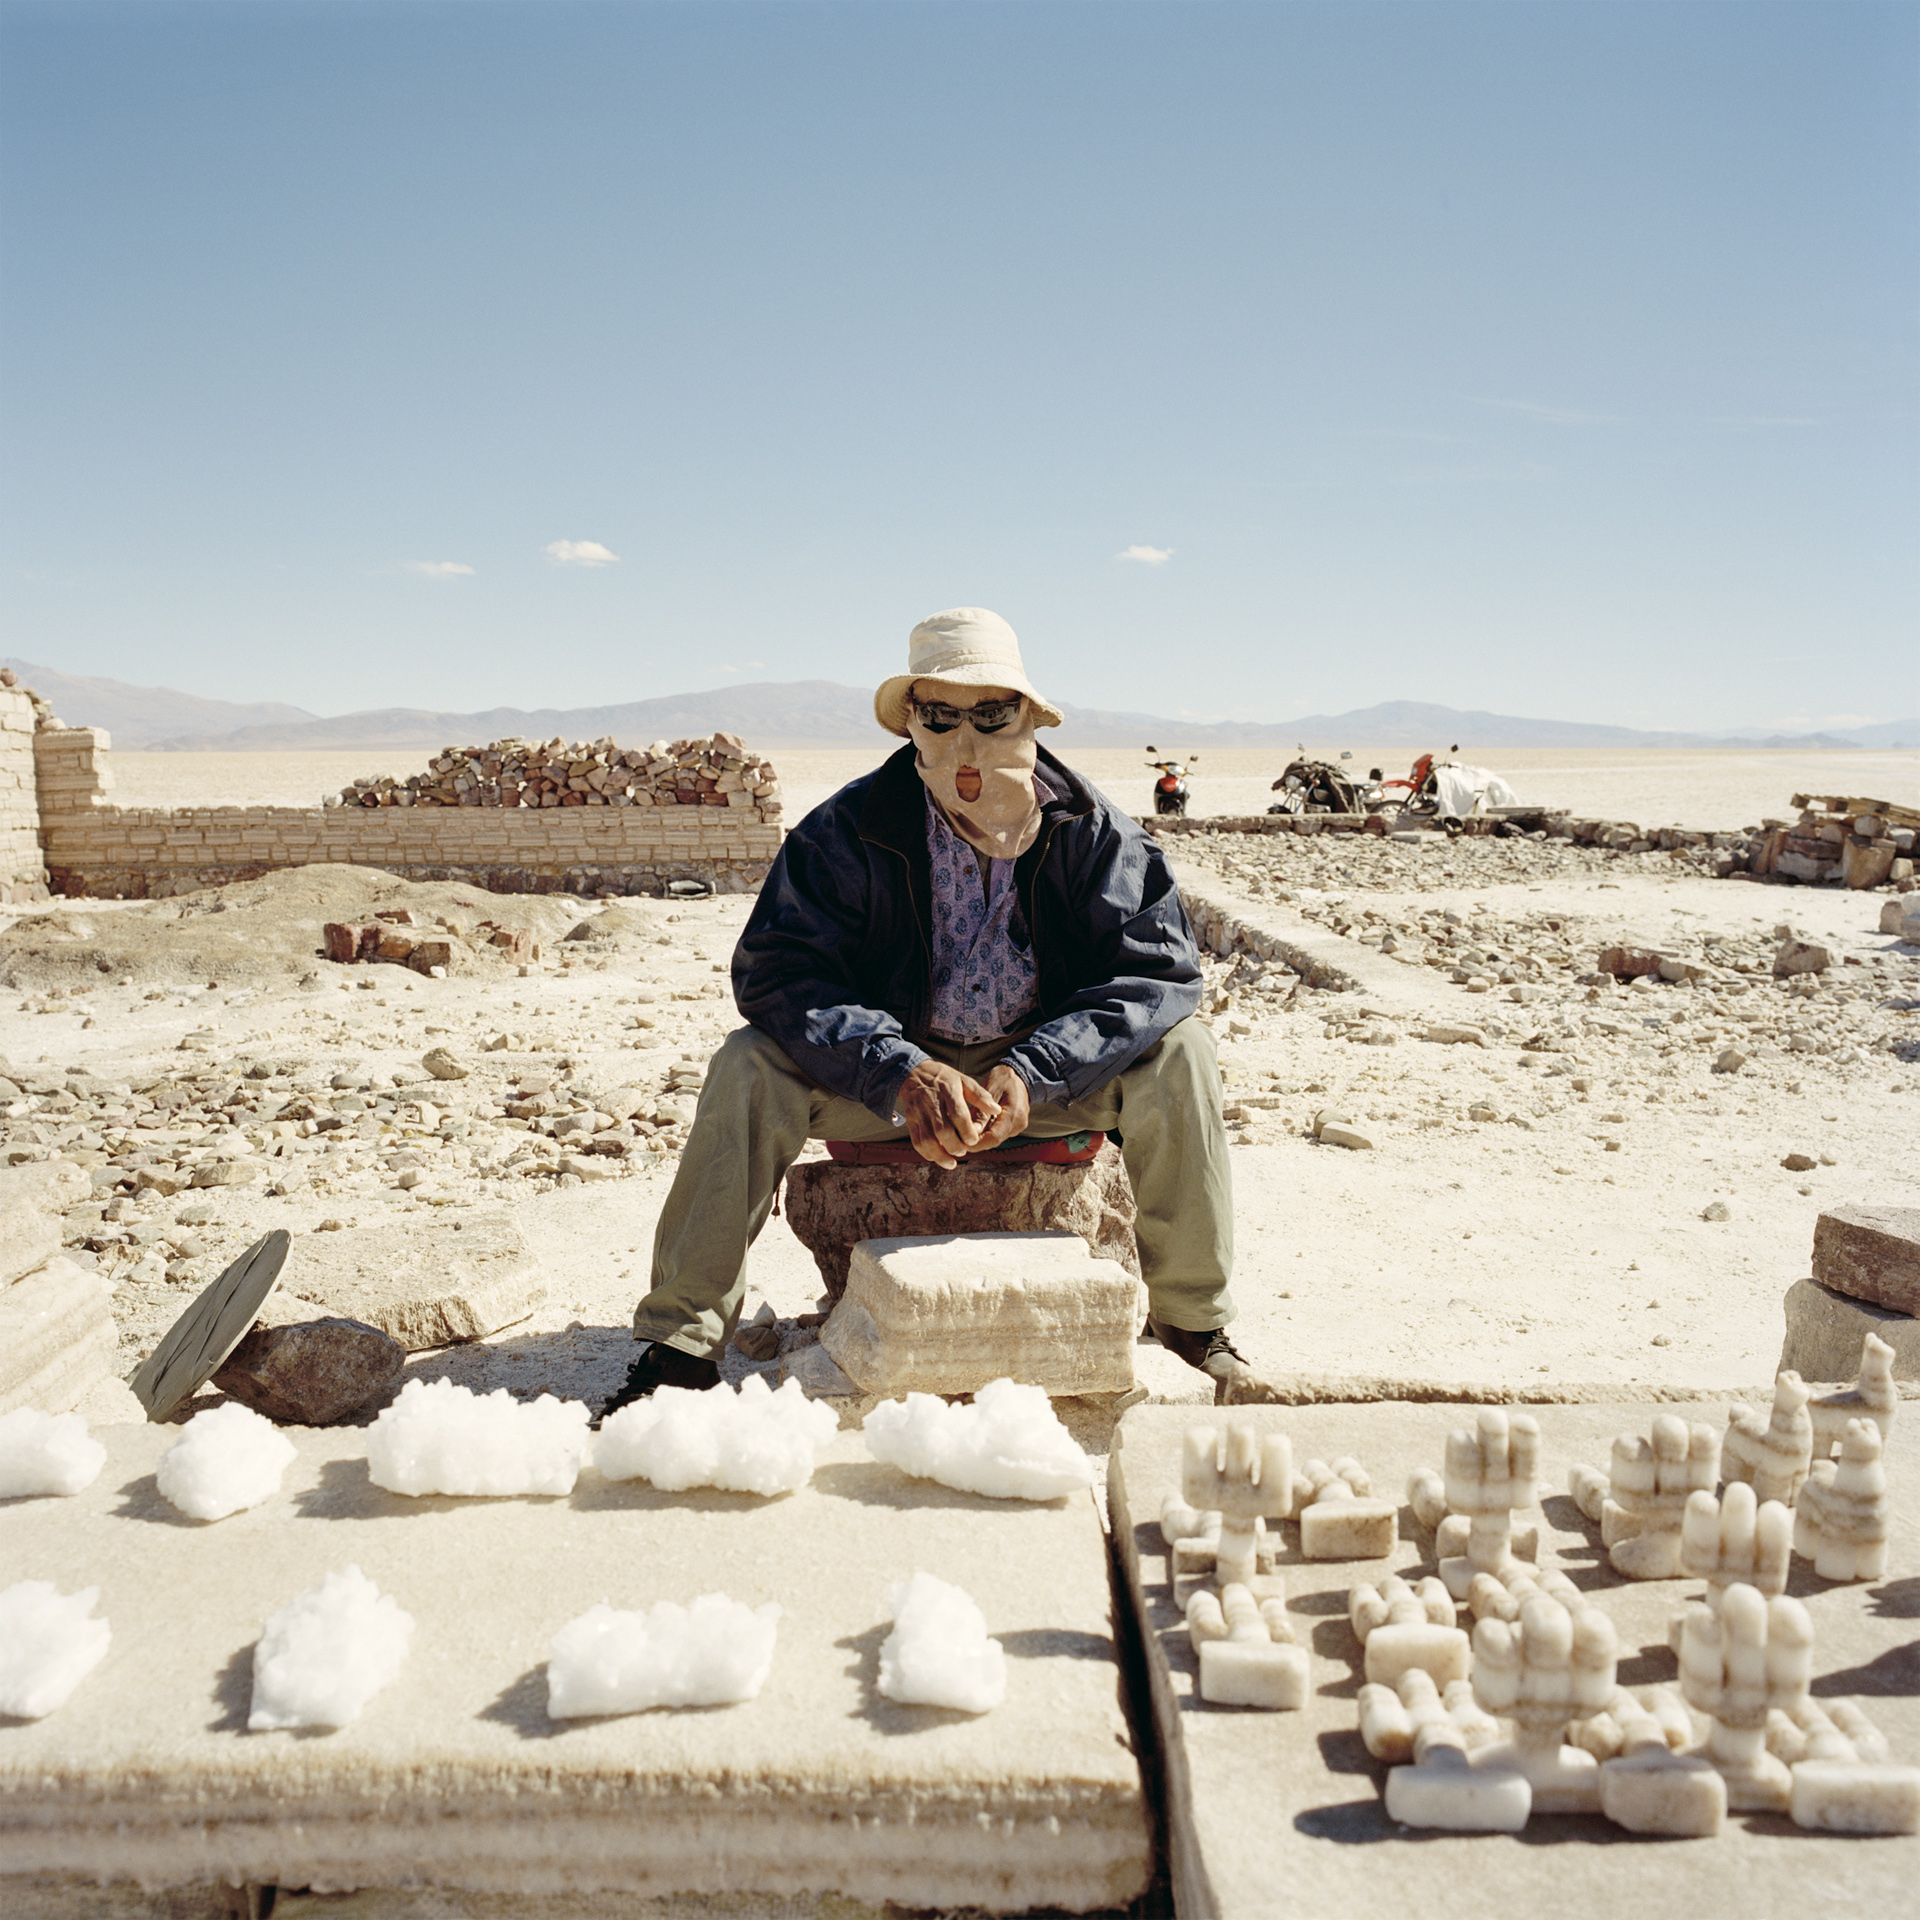 Jujuy Province. Salinas Grande is the biggest salt flat in Argentina, 60 kms in length and covering an area roughly 5200km2, at an altitude of 3350 meters. Salt is harvested from square pools dug into the crystalline salt plain. Souvenir seller.